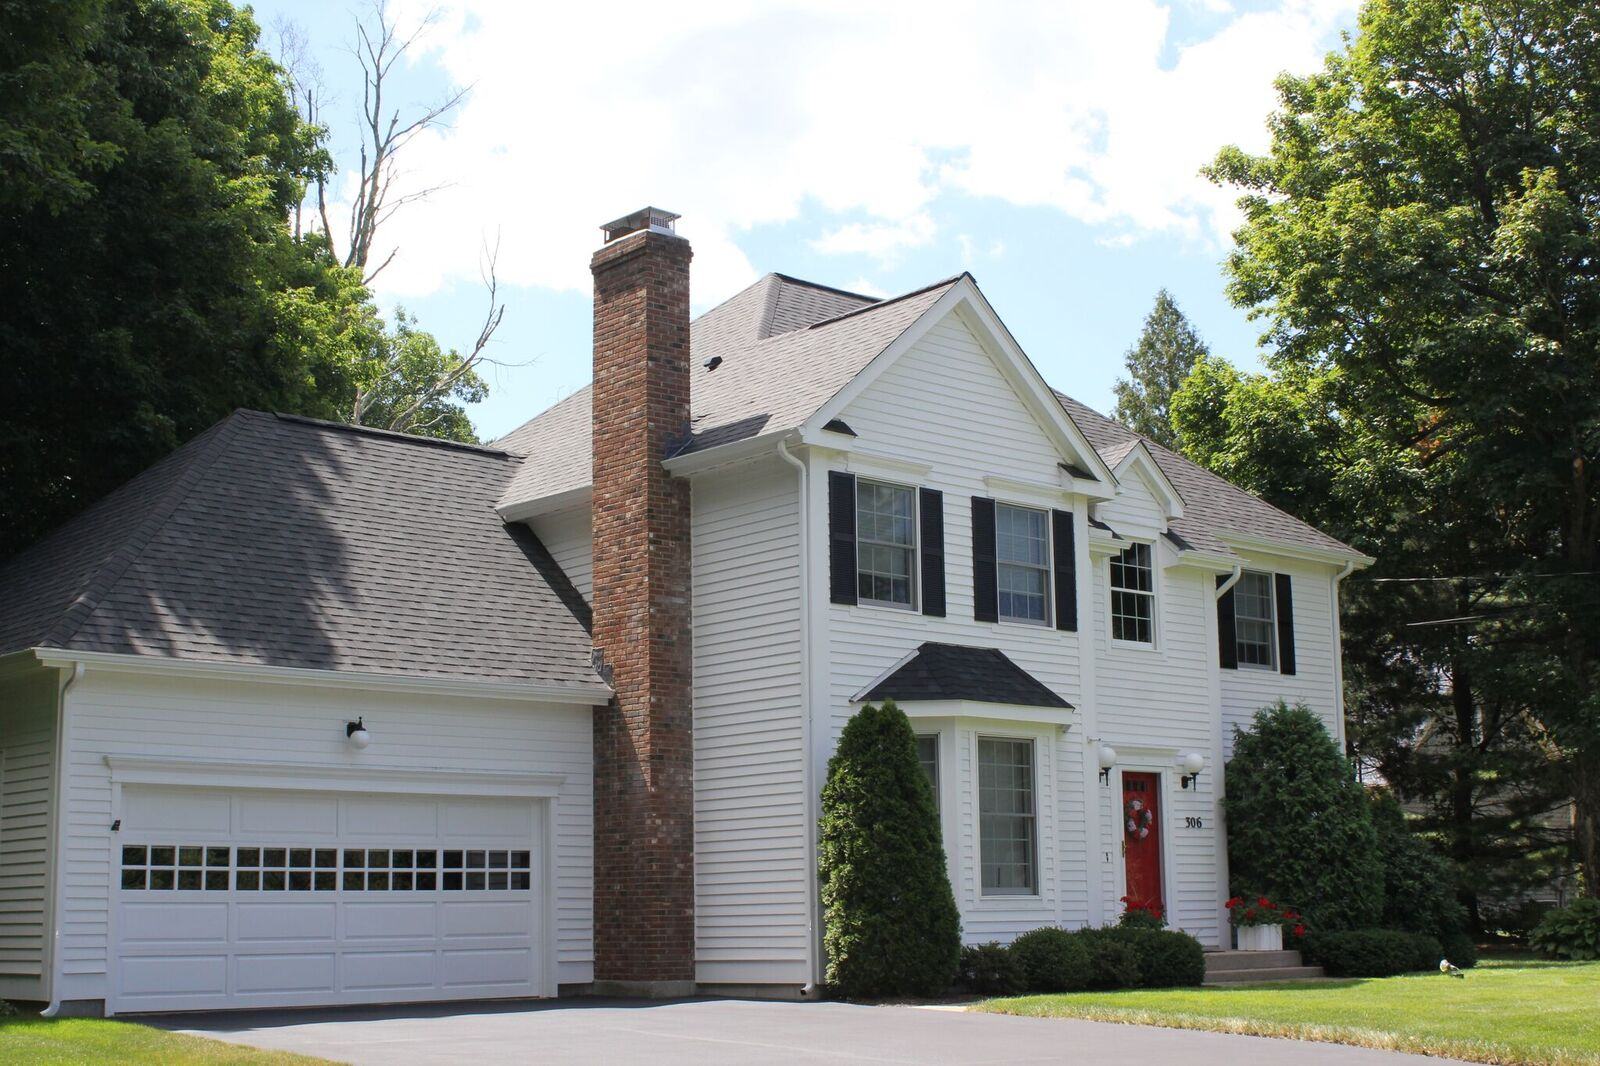 Roofing Simsbury Ct Rhino Back Roofing In Ct 860 217